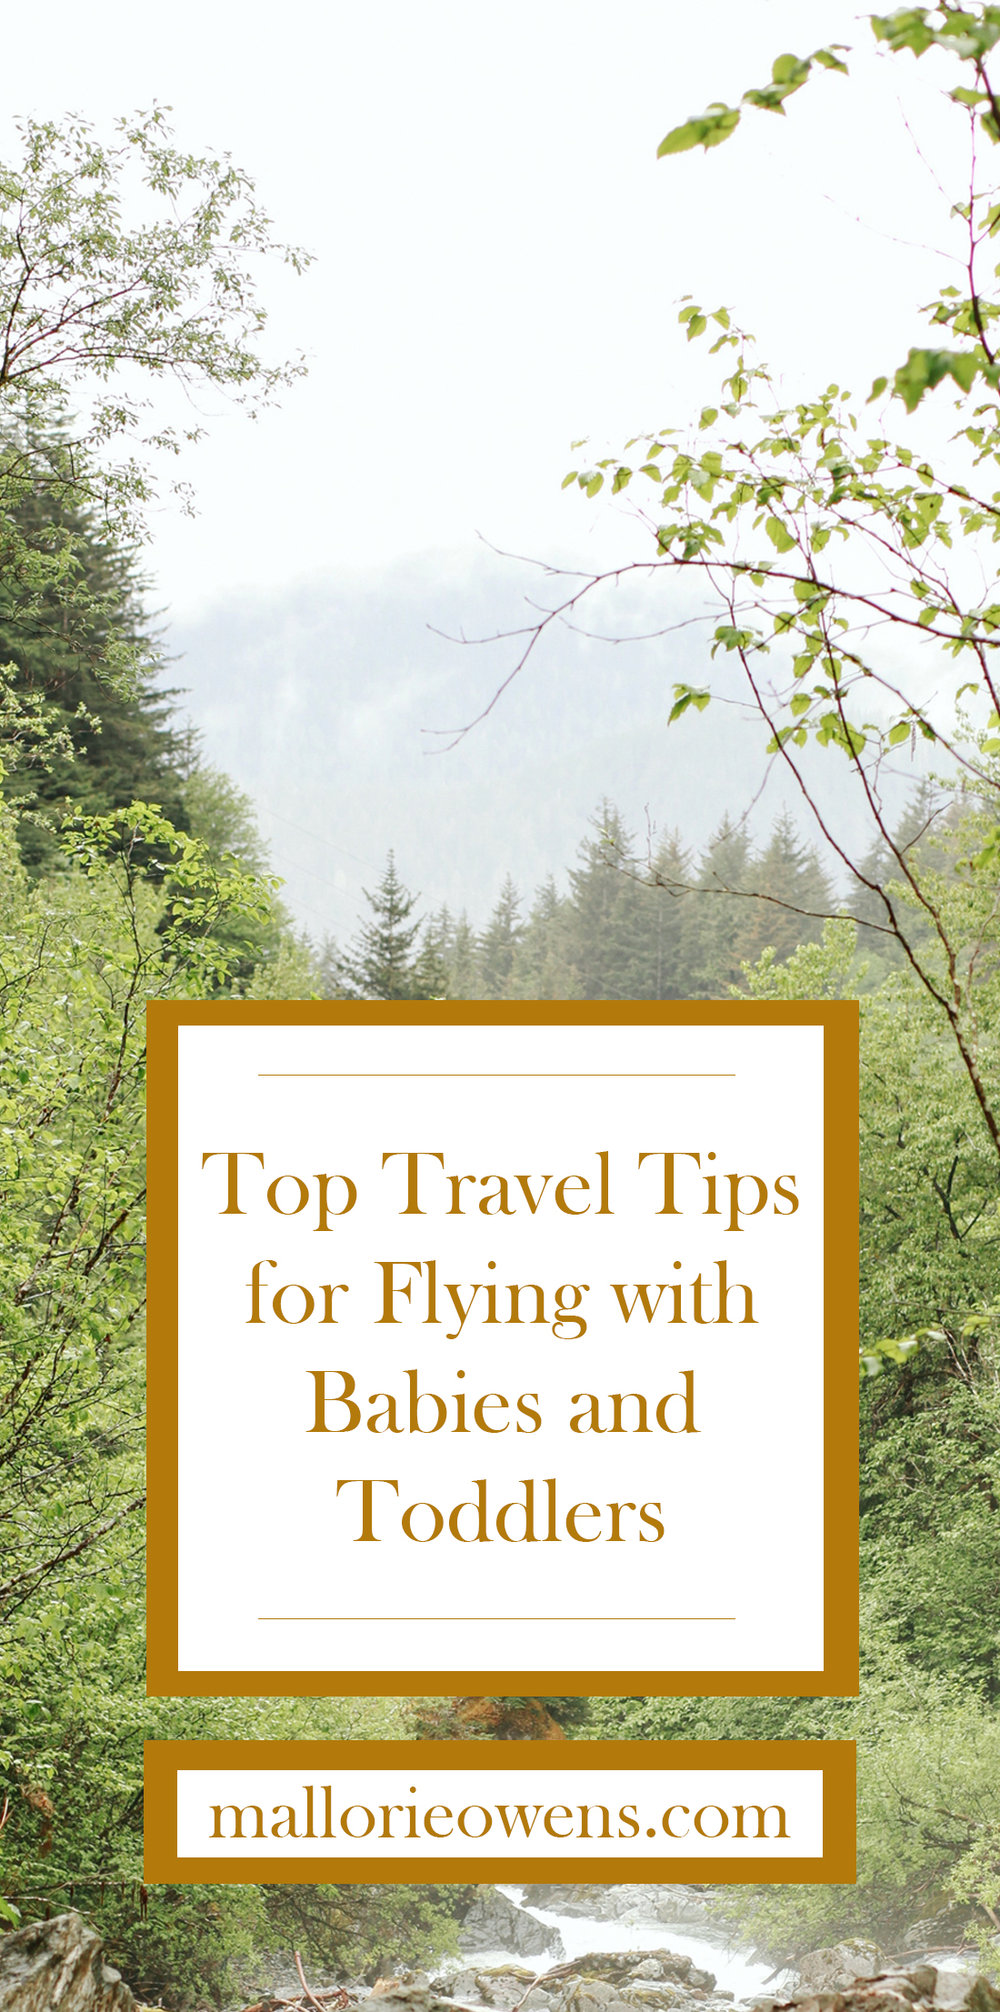 Top travel tips for flying with babies and toddlers. | MALLORIE OWENS